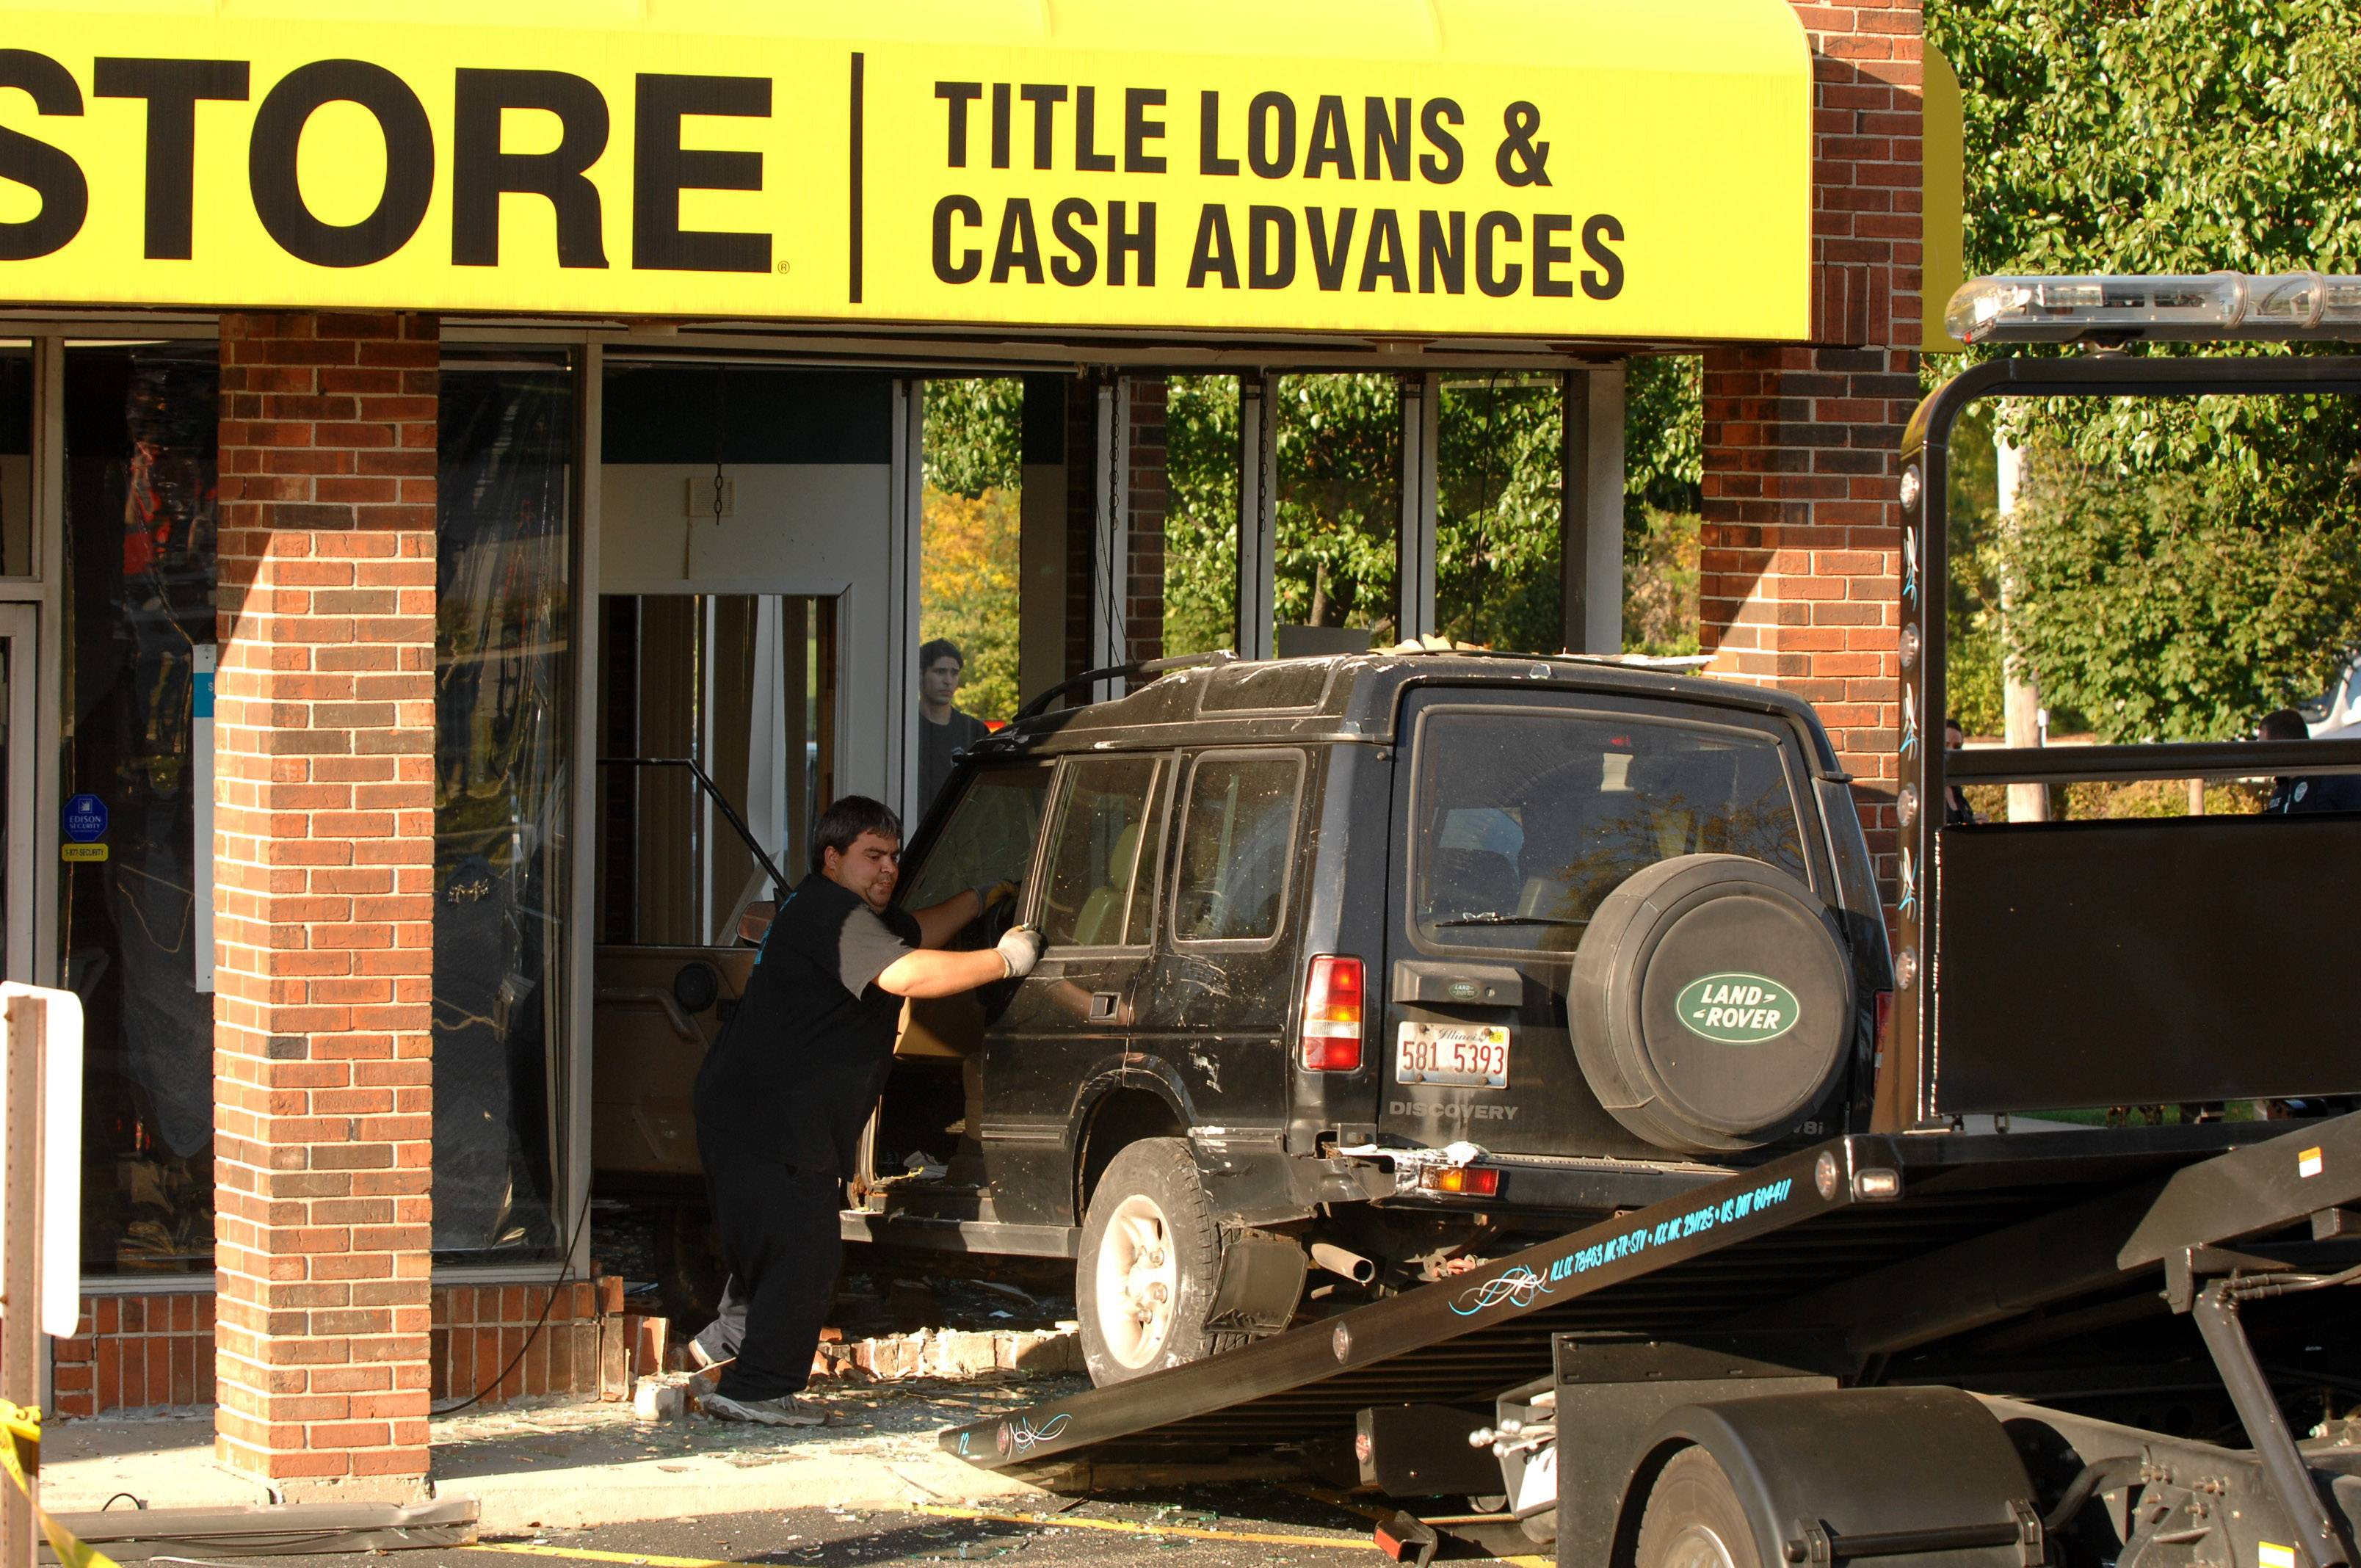 An SUV crashed into the Cash Store on Oct. 4, 2001, at the intersection of Stewart Ave and Roosevelt Road in Lombard. The car was heading west bound on Roosevelt Road at some point veered off the road driving over a small tree then over a sidewalk, through a small parking lot before coming to rest inside the Cash Store.